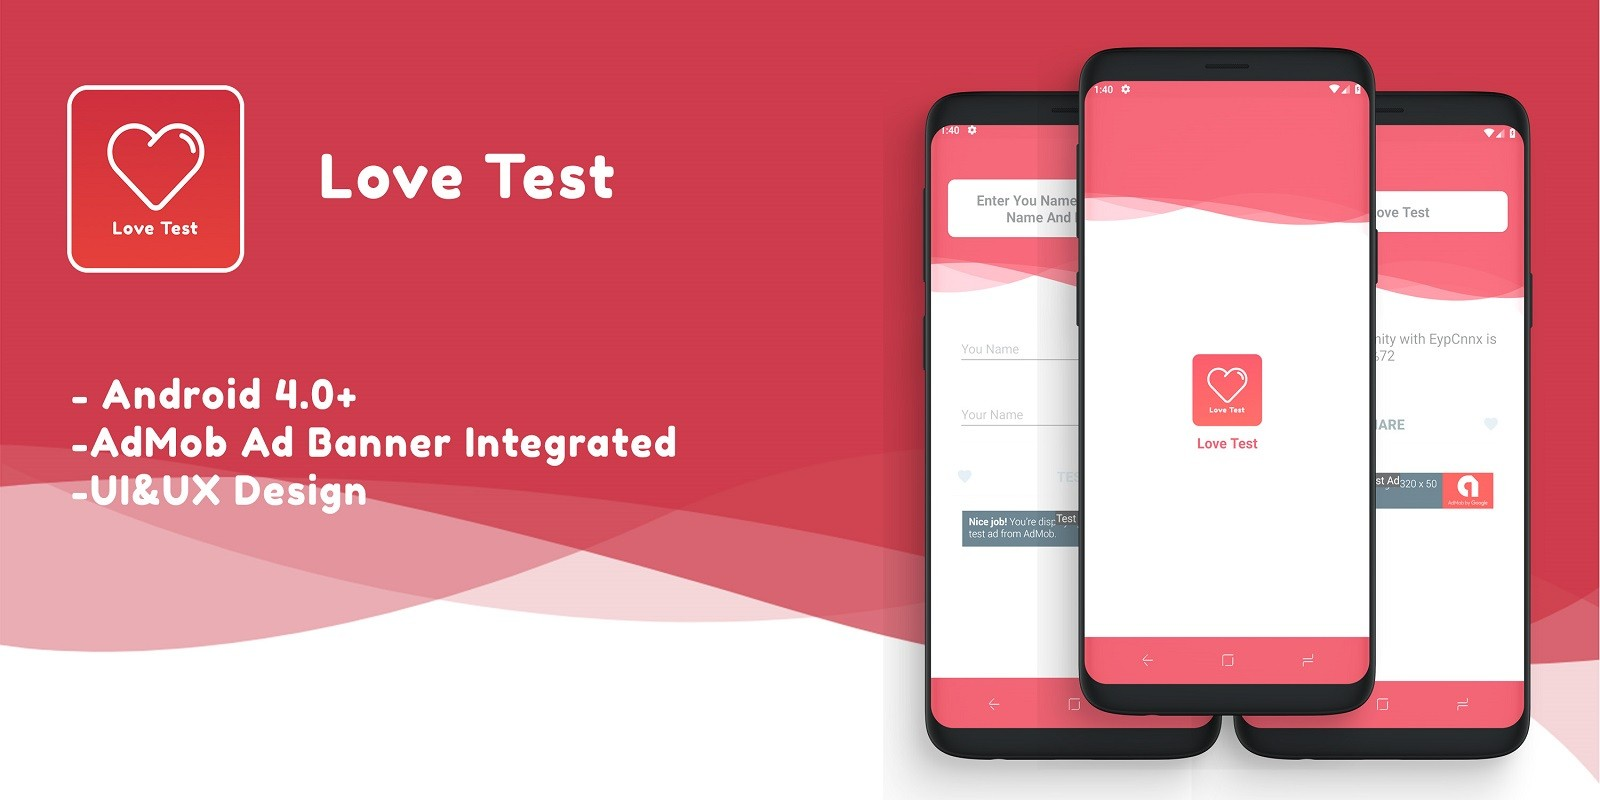 Love Test - Android Source Code